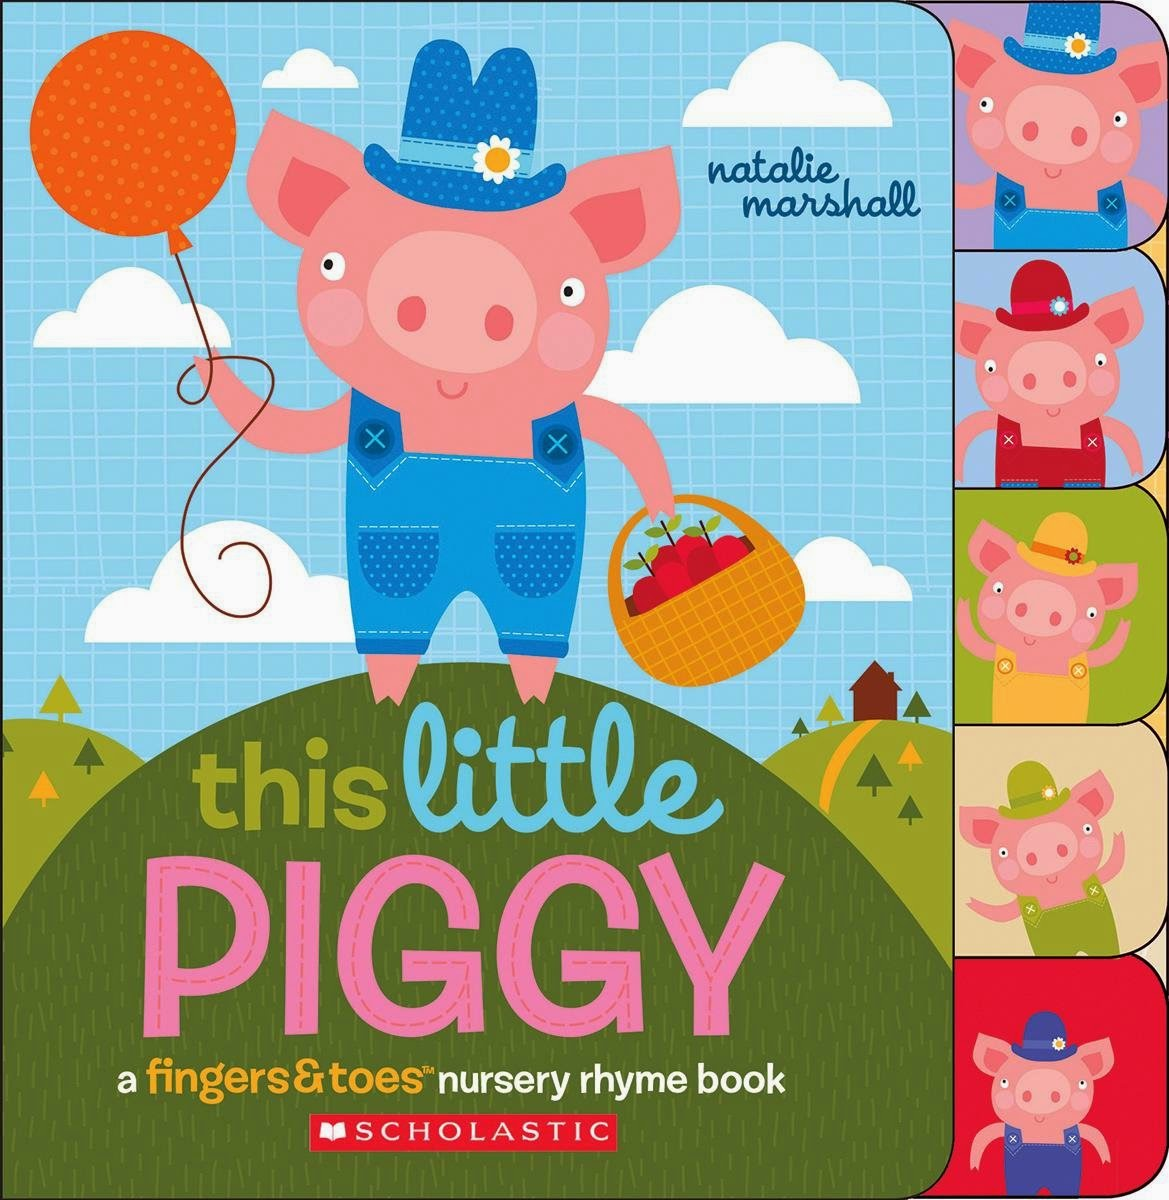 http://www.amazon.com/This-Little-Piggy-Fingers-Nursery/dp/054576761X/ref=sr_1_6?s=books&ie=UTF8&qid=1425914935&sr=1-6&keywords=this+little+piggy